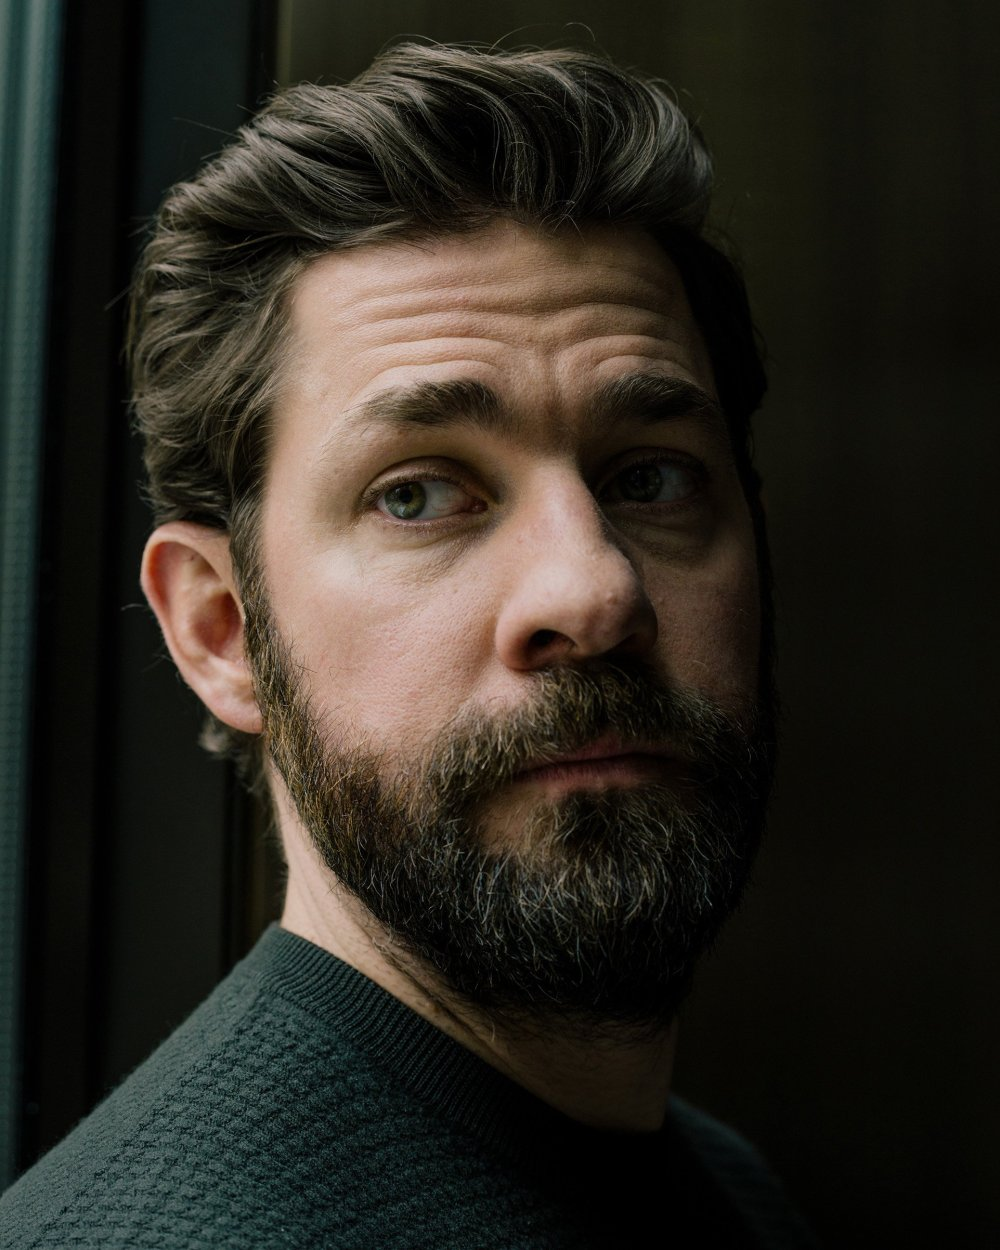 Actor and director John Krasinski in New York on March 26, 2018.